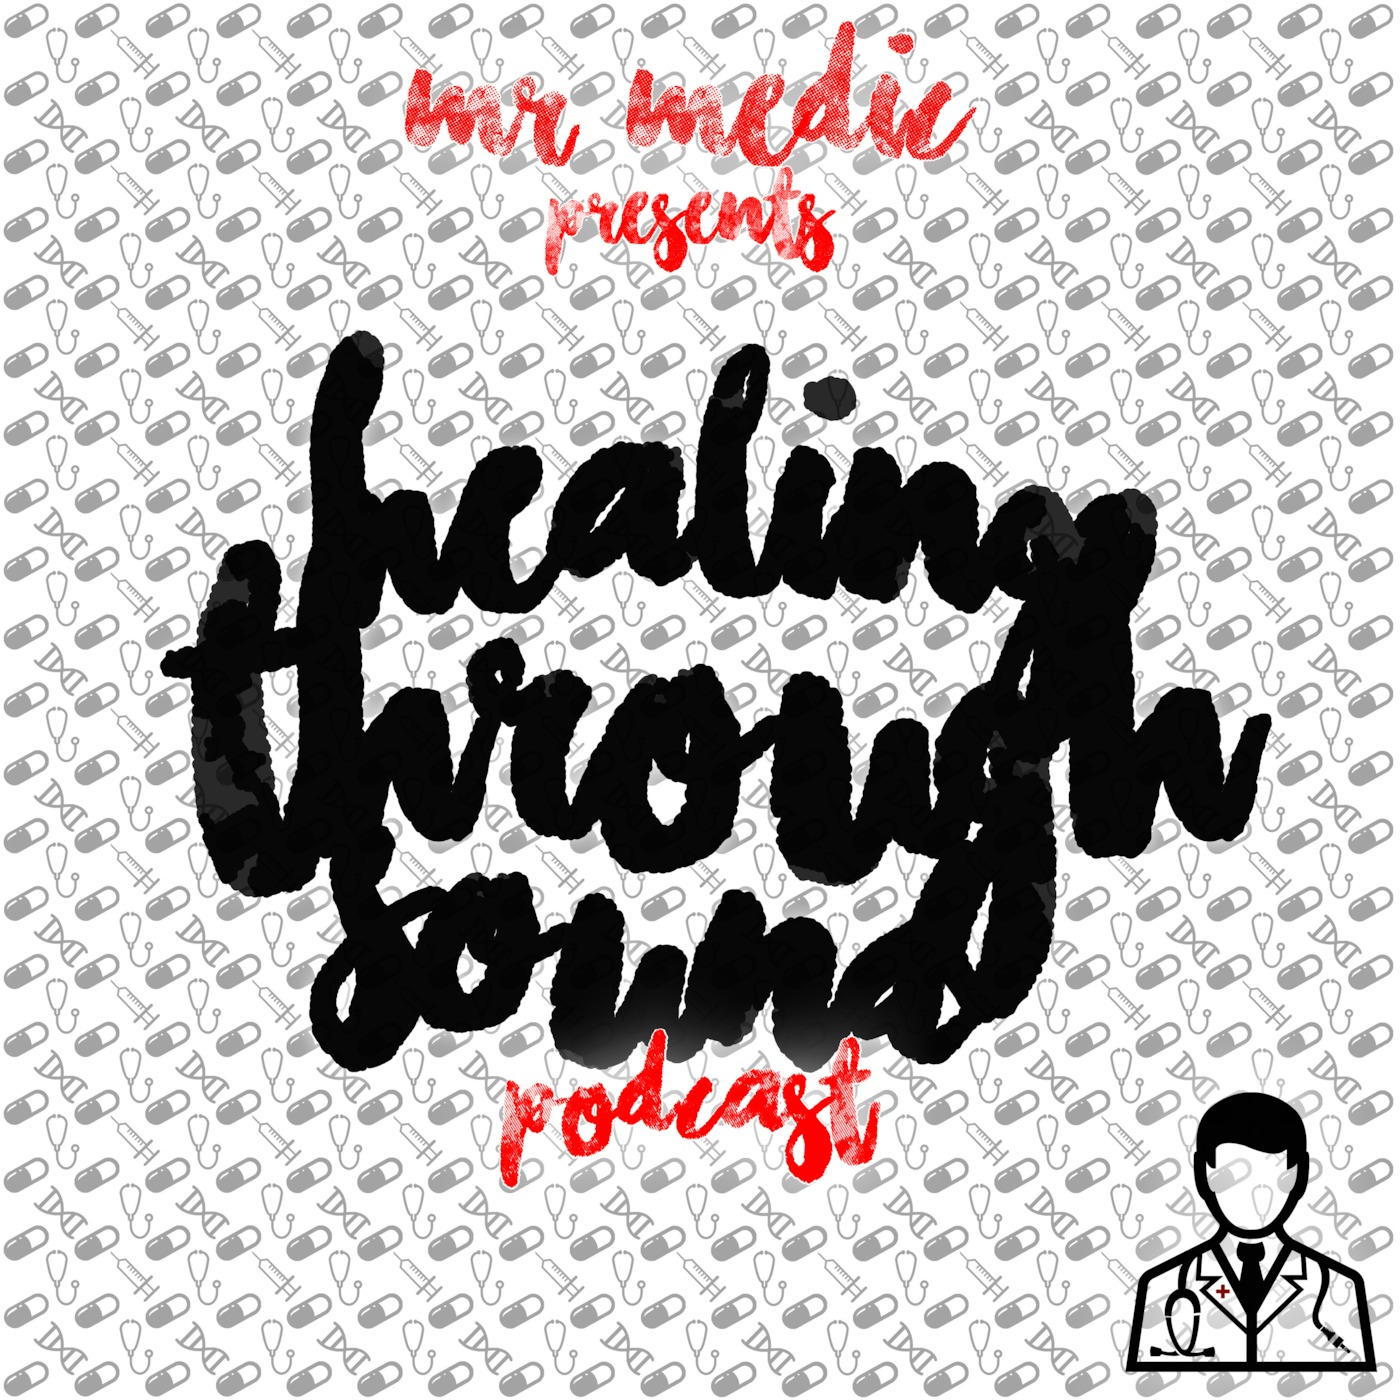 Mr. Medic's Podcast